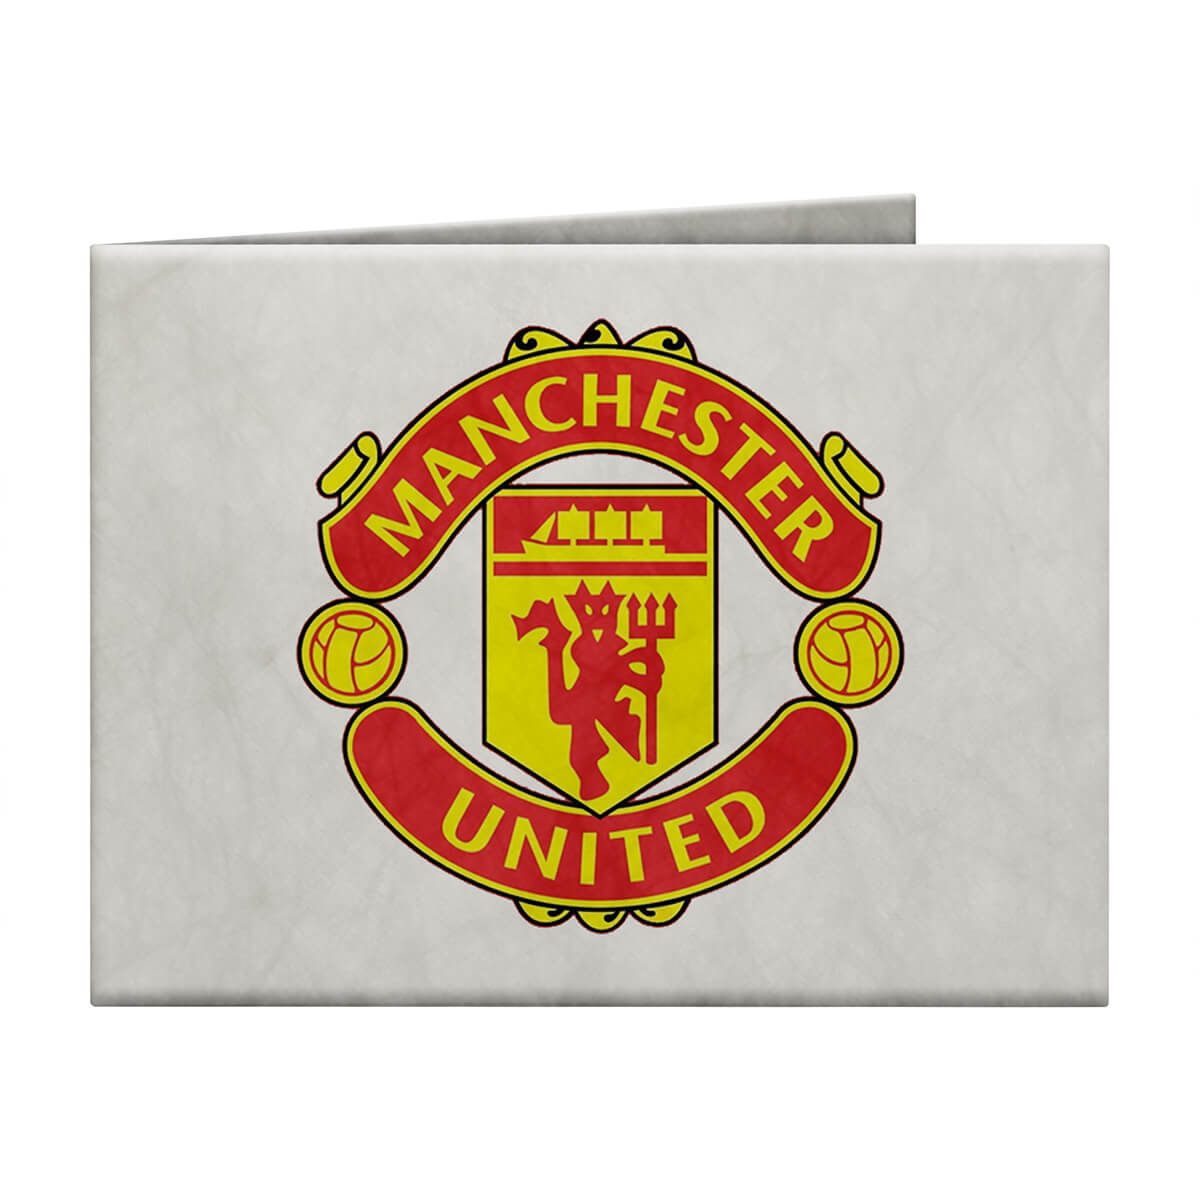 Carteira de Papel Tyvek United